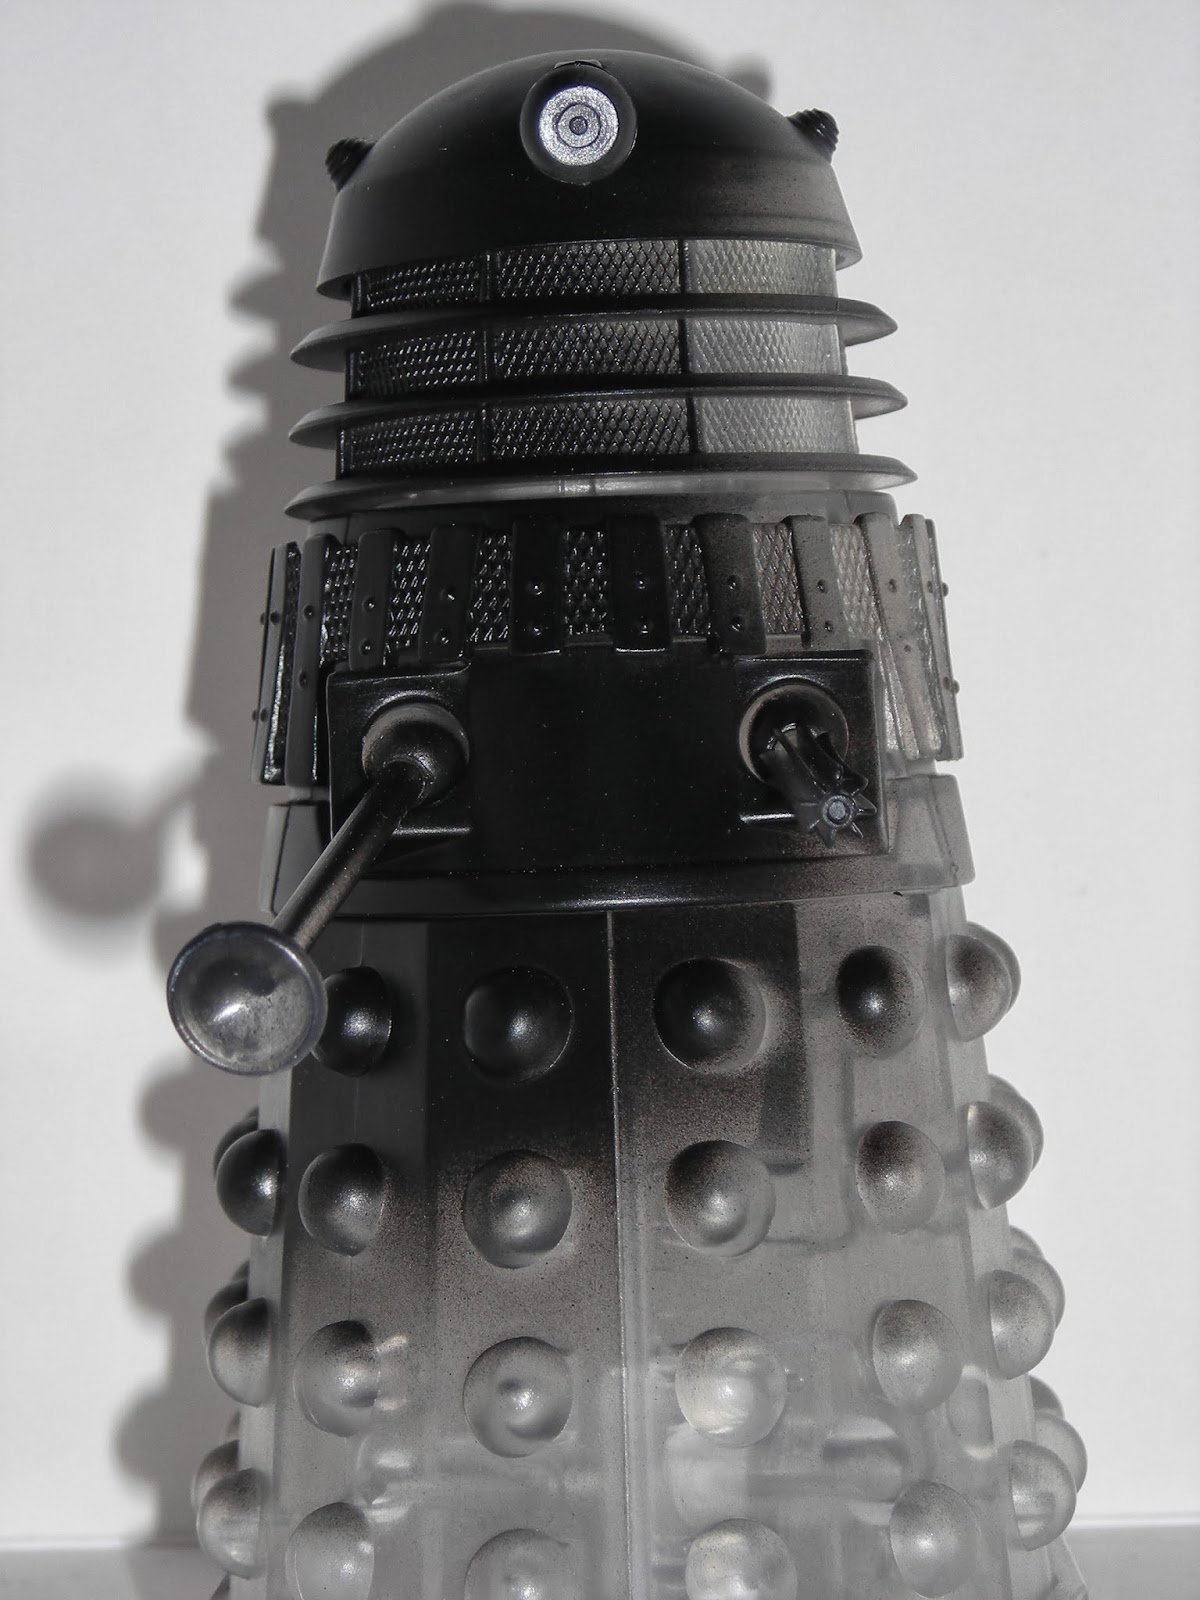 Invisible Dalek power!